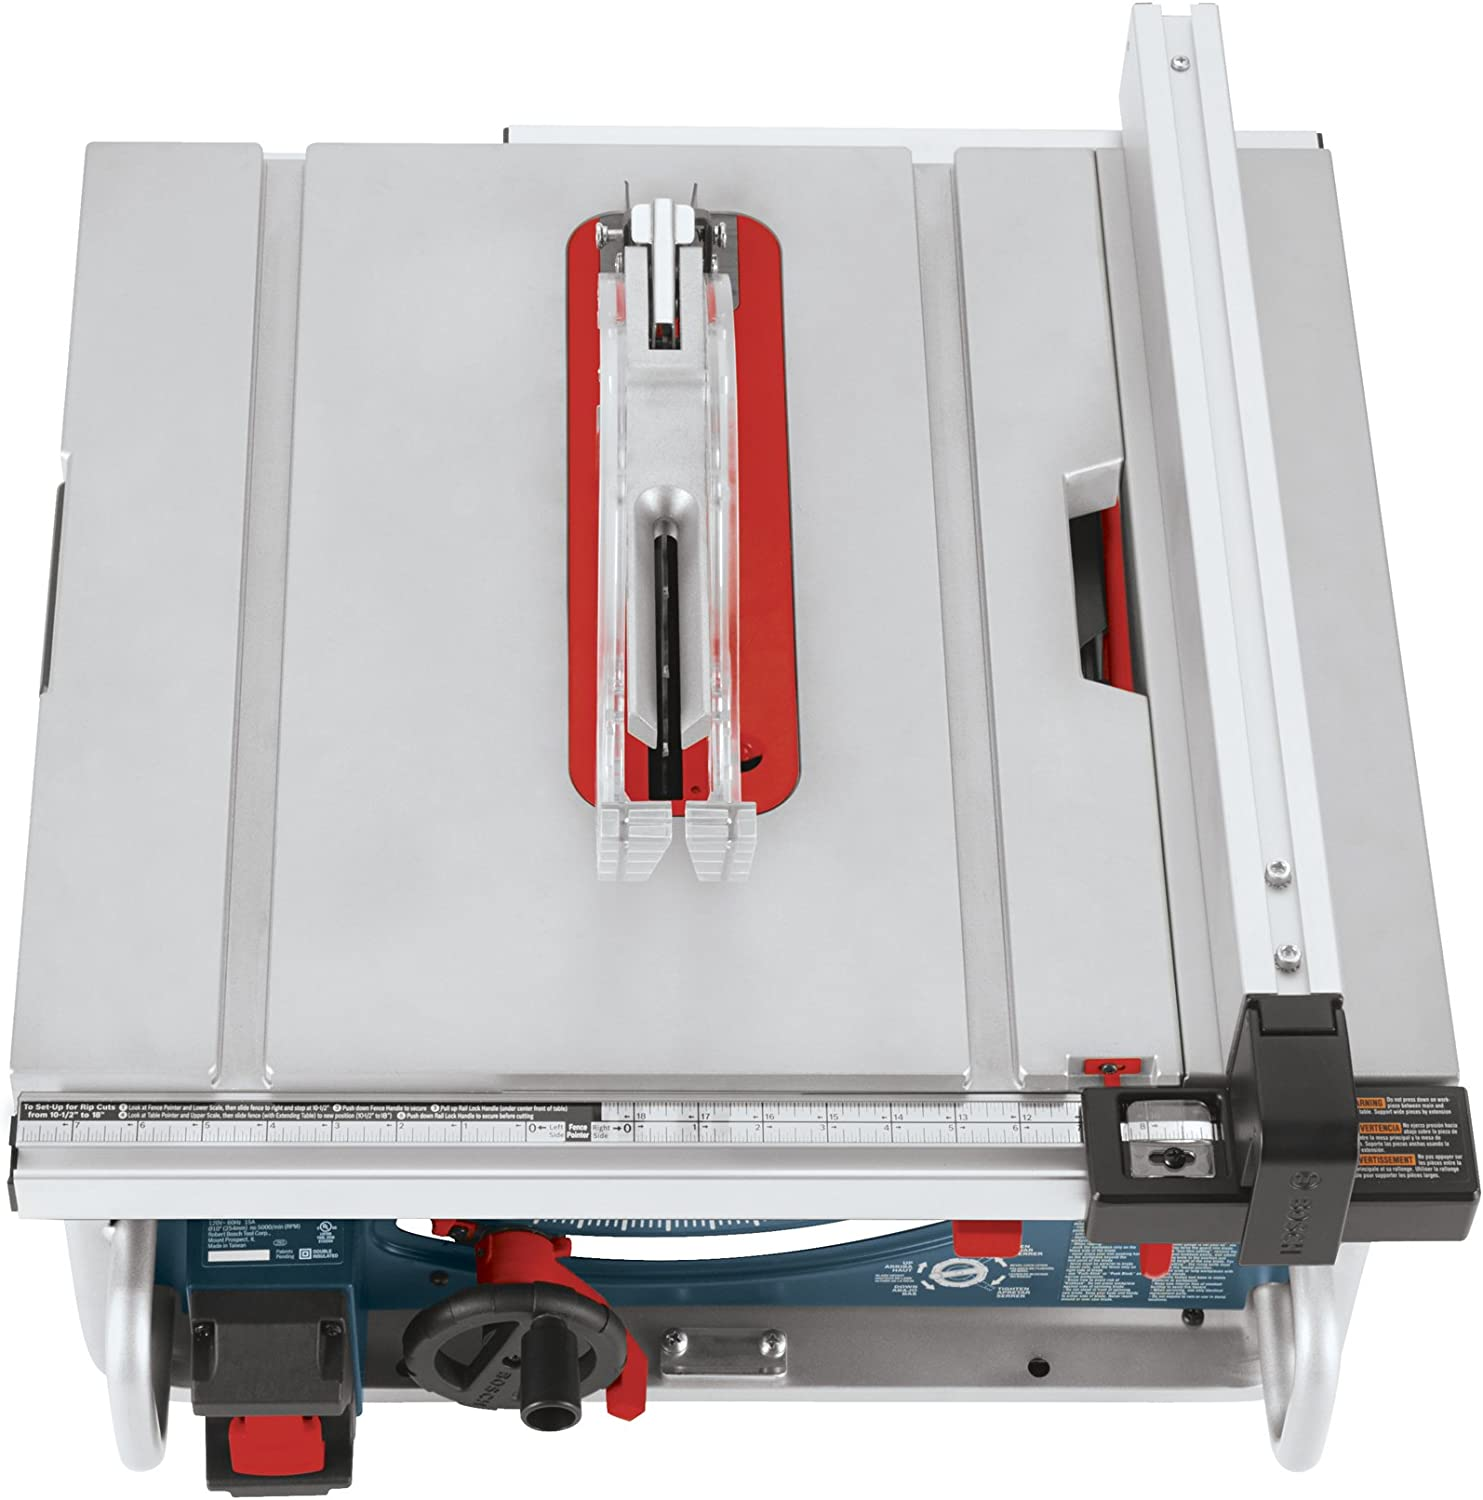 Bosch GTS1031 Table Saws product image 25